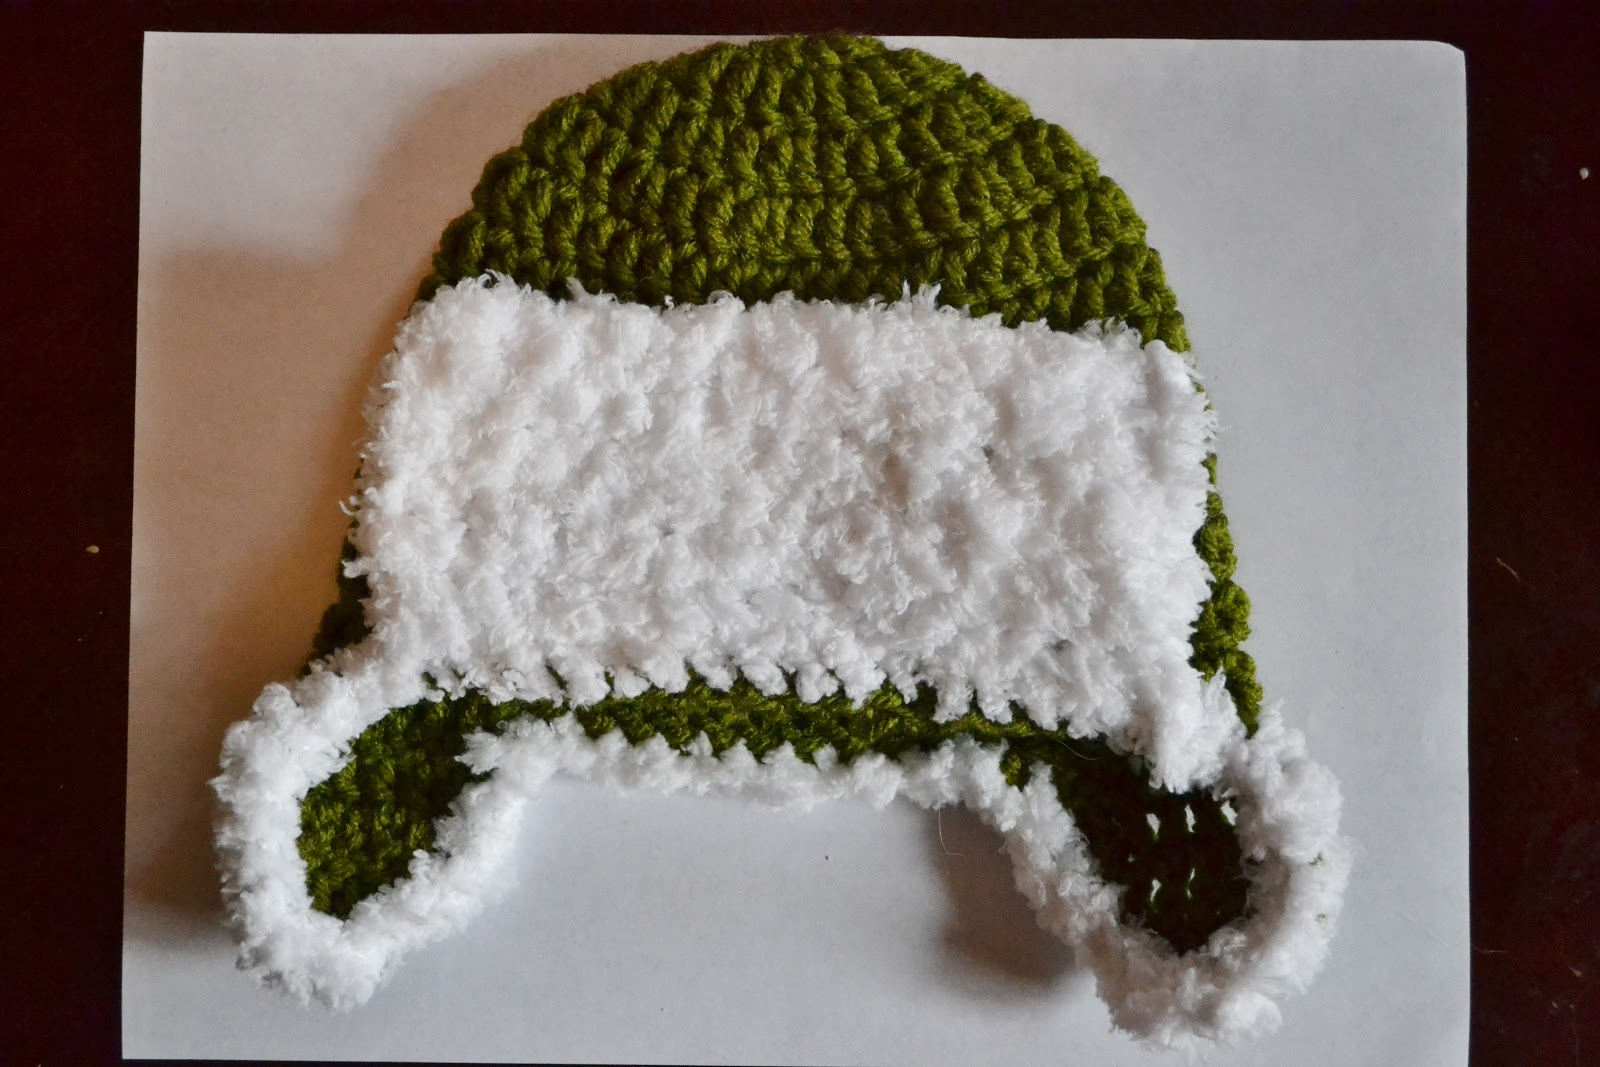 Crochet Baby Aviator Hat Pattern Free : The Sequin Turtle: Naptime: Day 10 - Free Crochet Baby ...